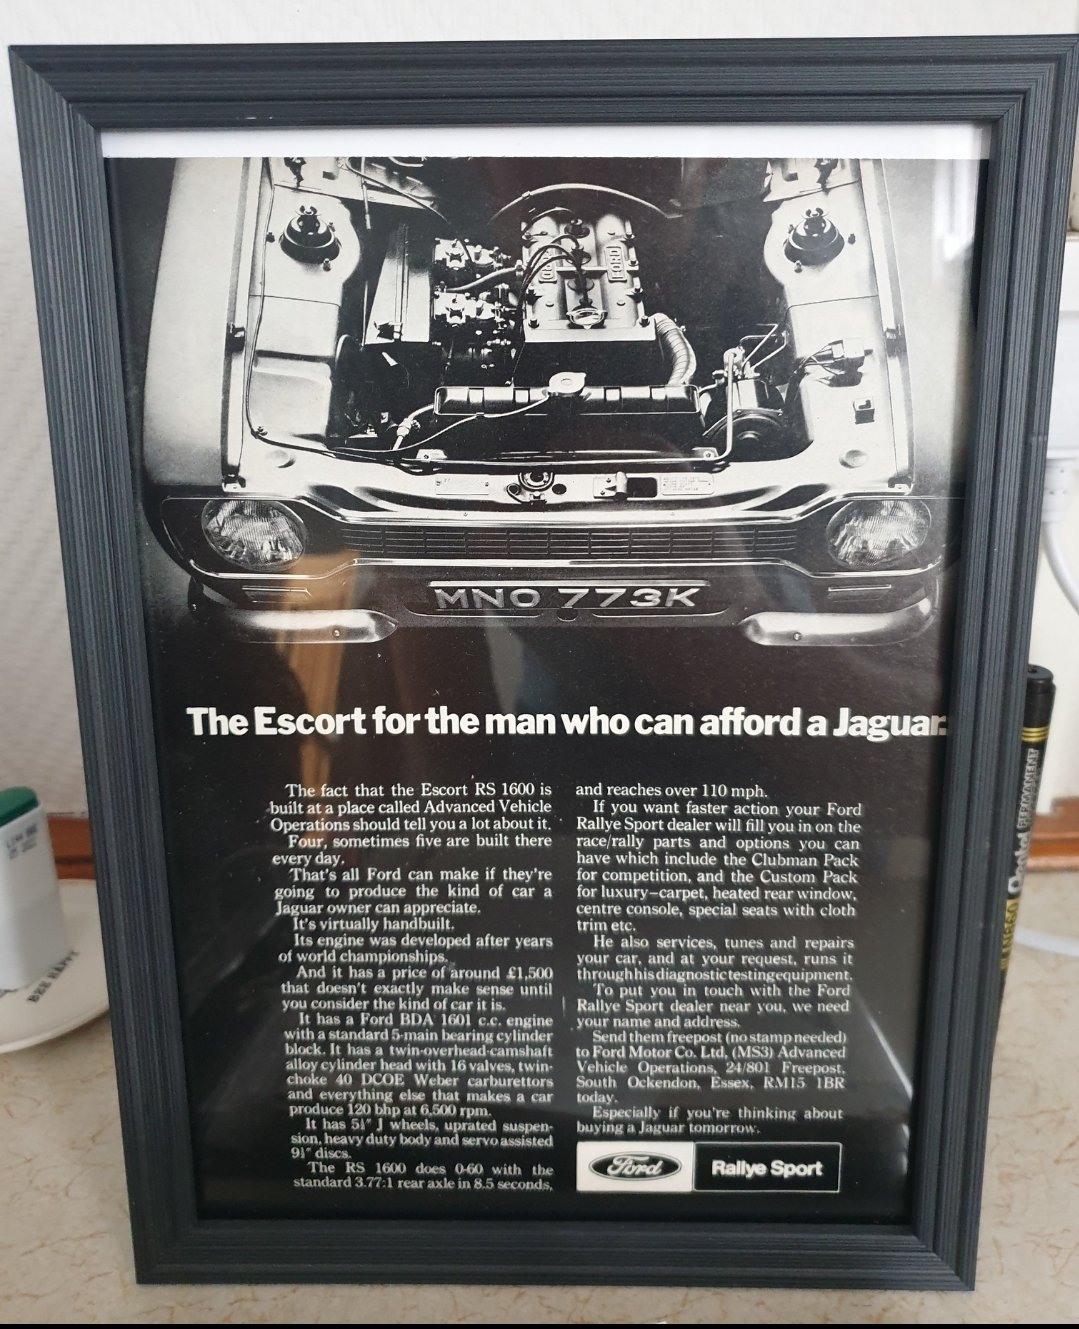 1971 Escort RS1600 Framed Advert Original  For Sale (picture 1 of 2)